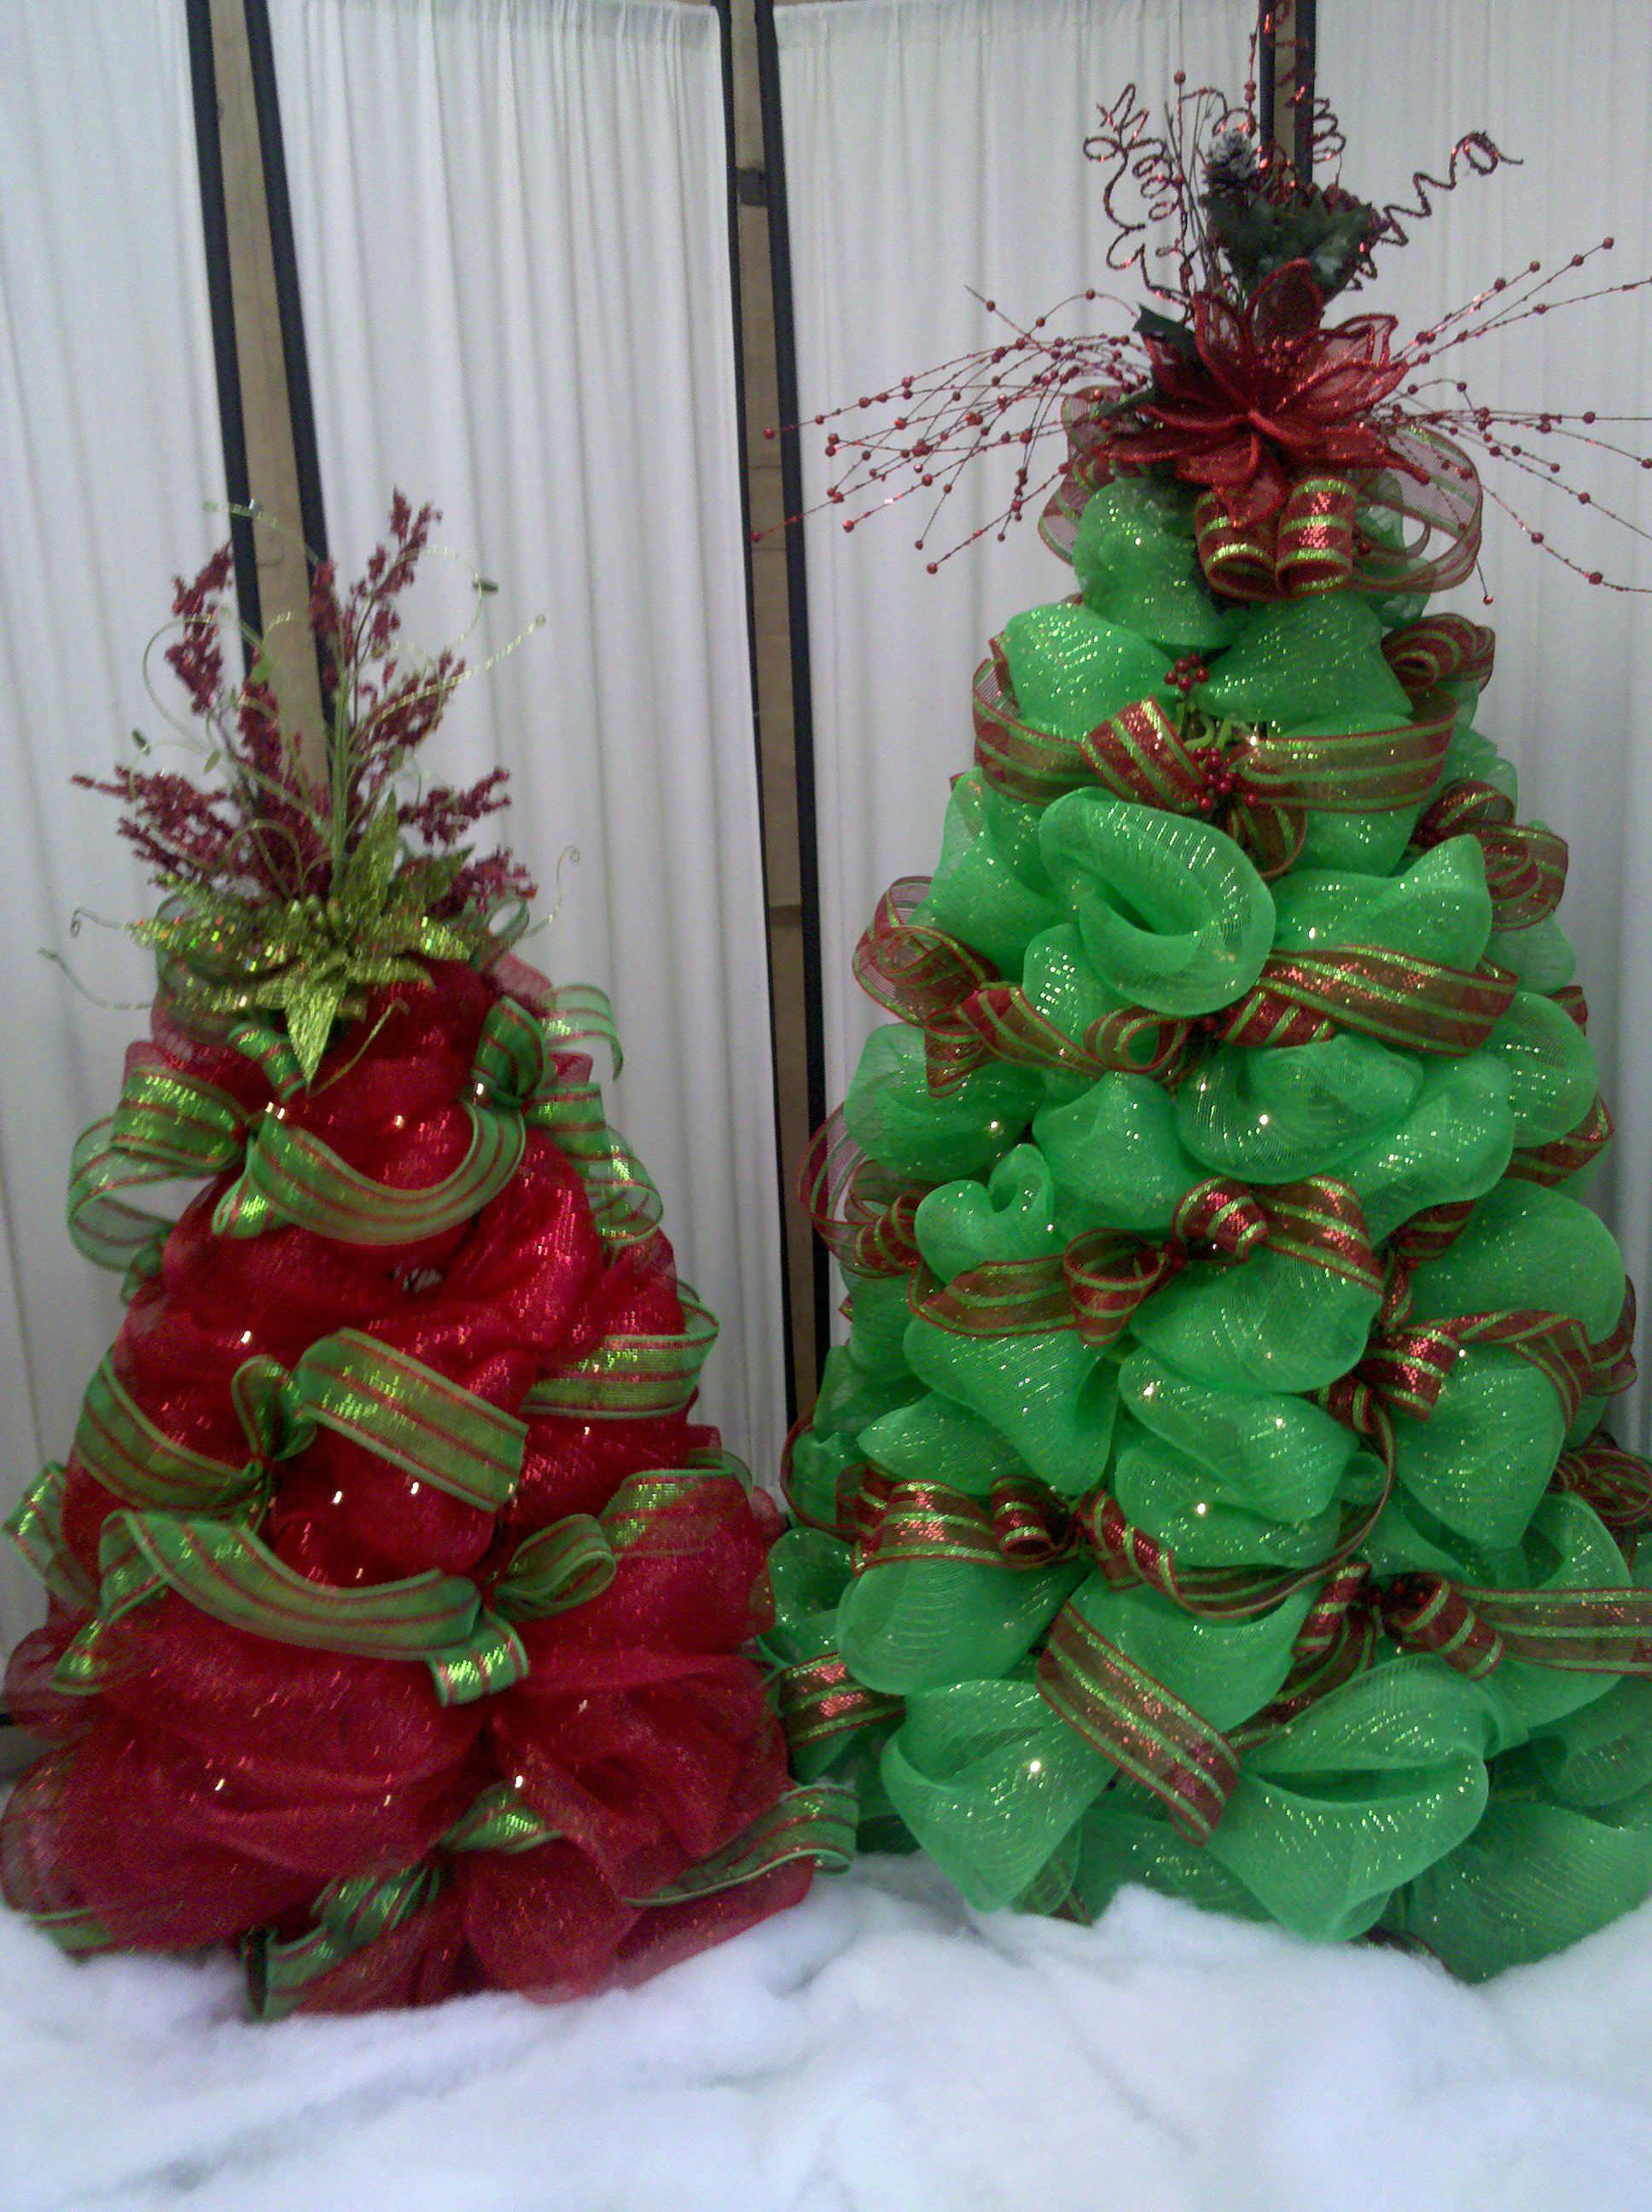 deco mesh christmas trees cute idea i could use tomato cages and add lights - Tomato Cage Christmas Decorations